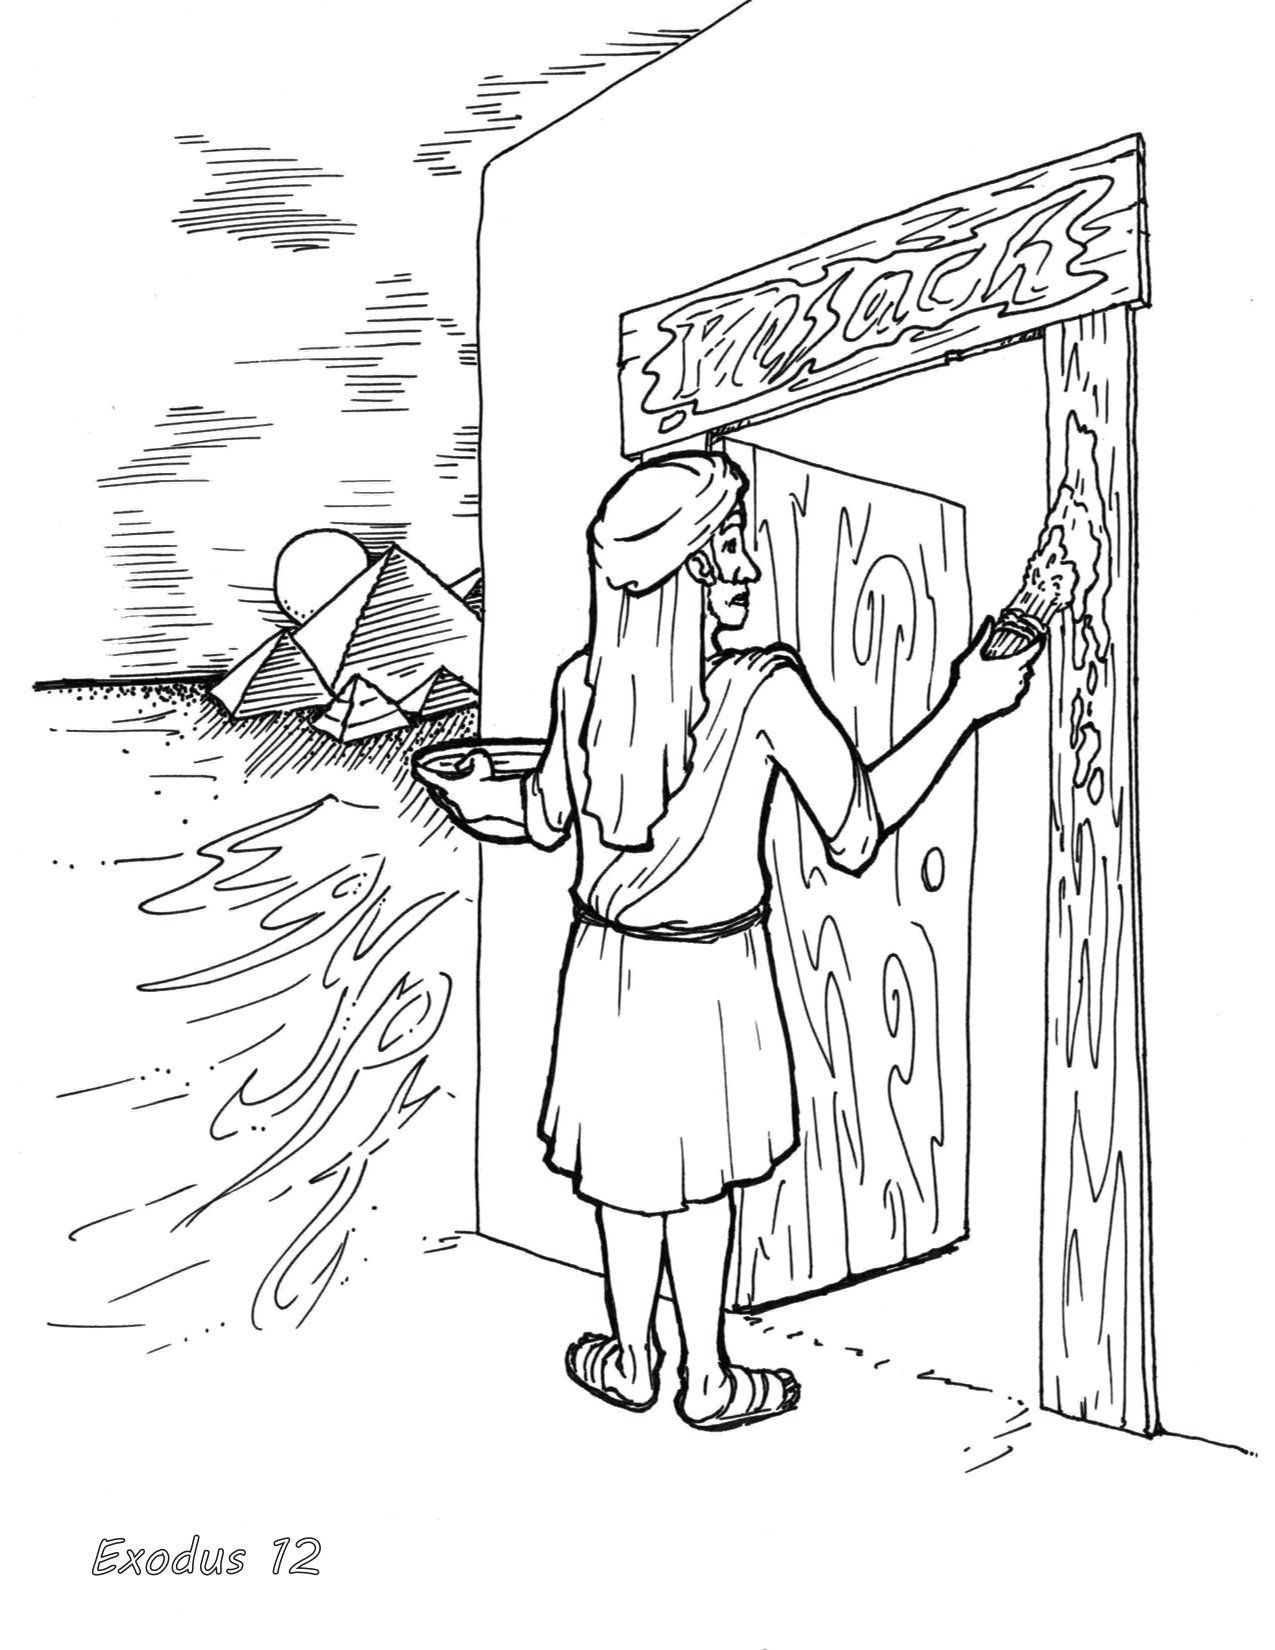 Passover Bible Coloring Page In 2021 Bible Coloring Pages Coloring Pages Bible Coloring [ 1650 x 1275 Pixel ]